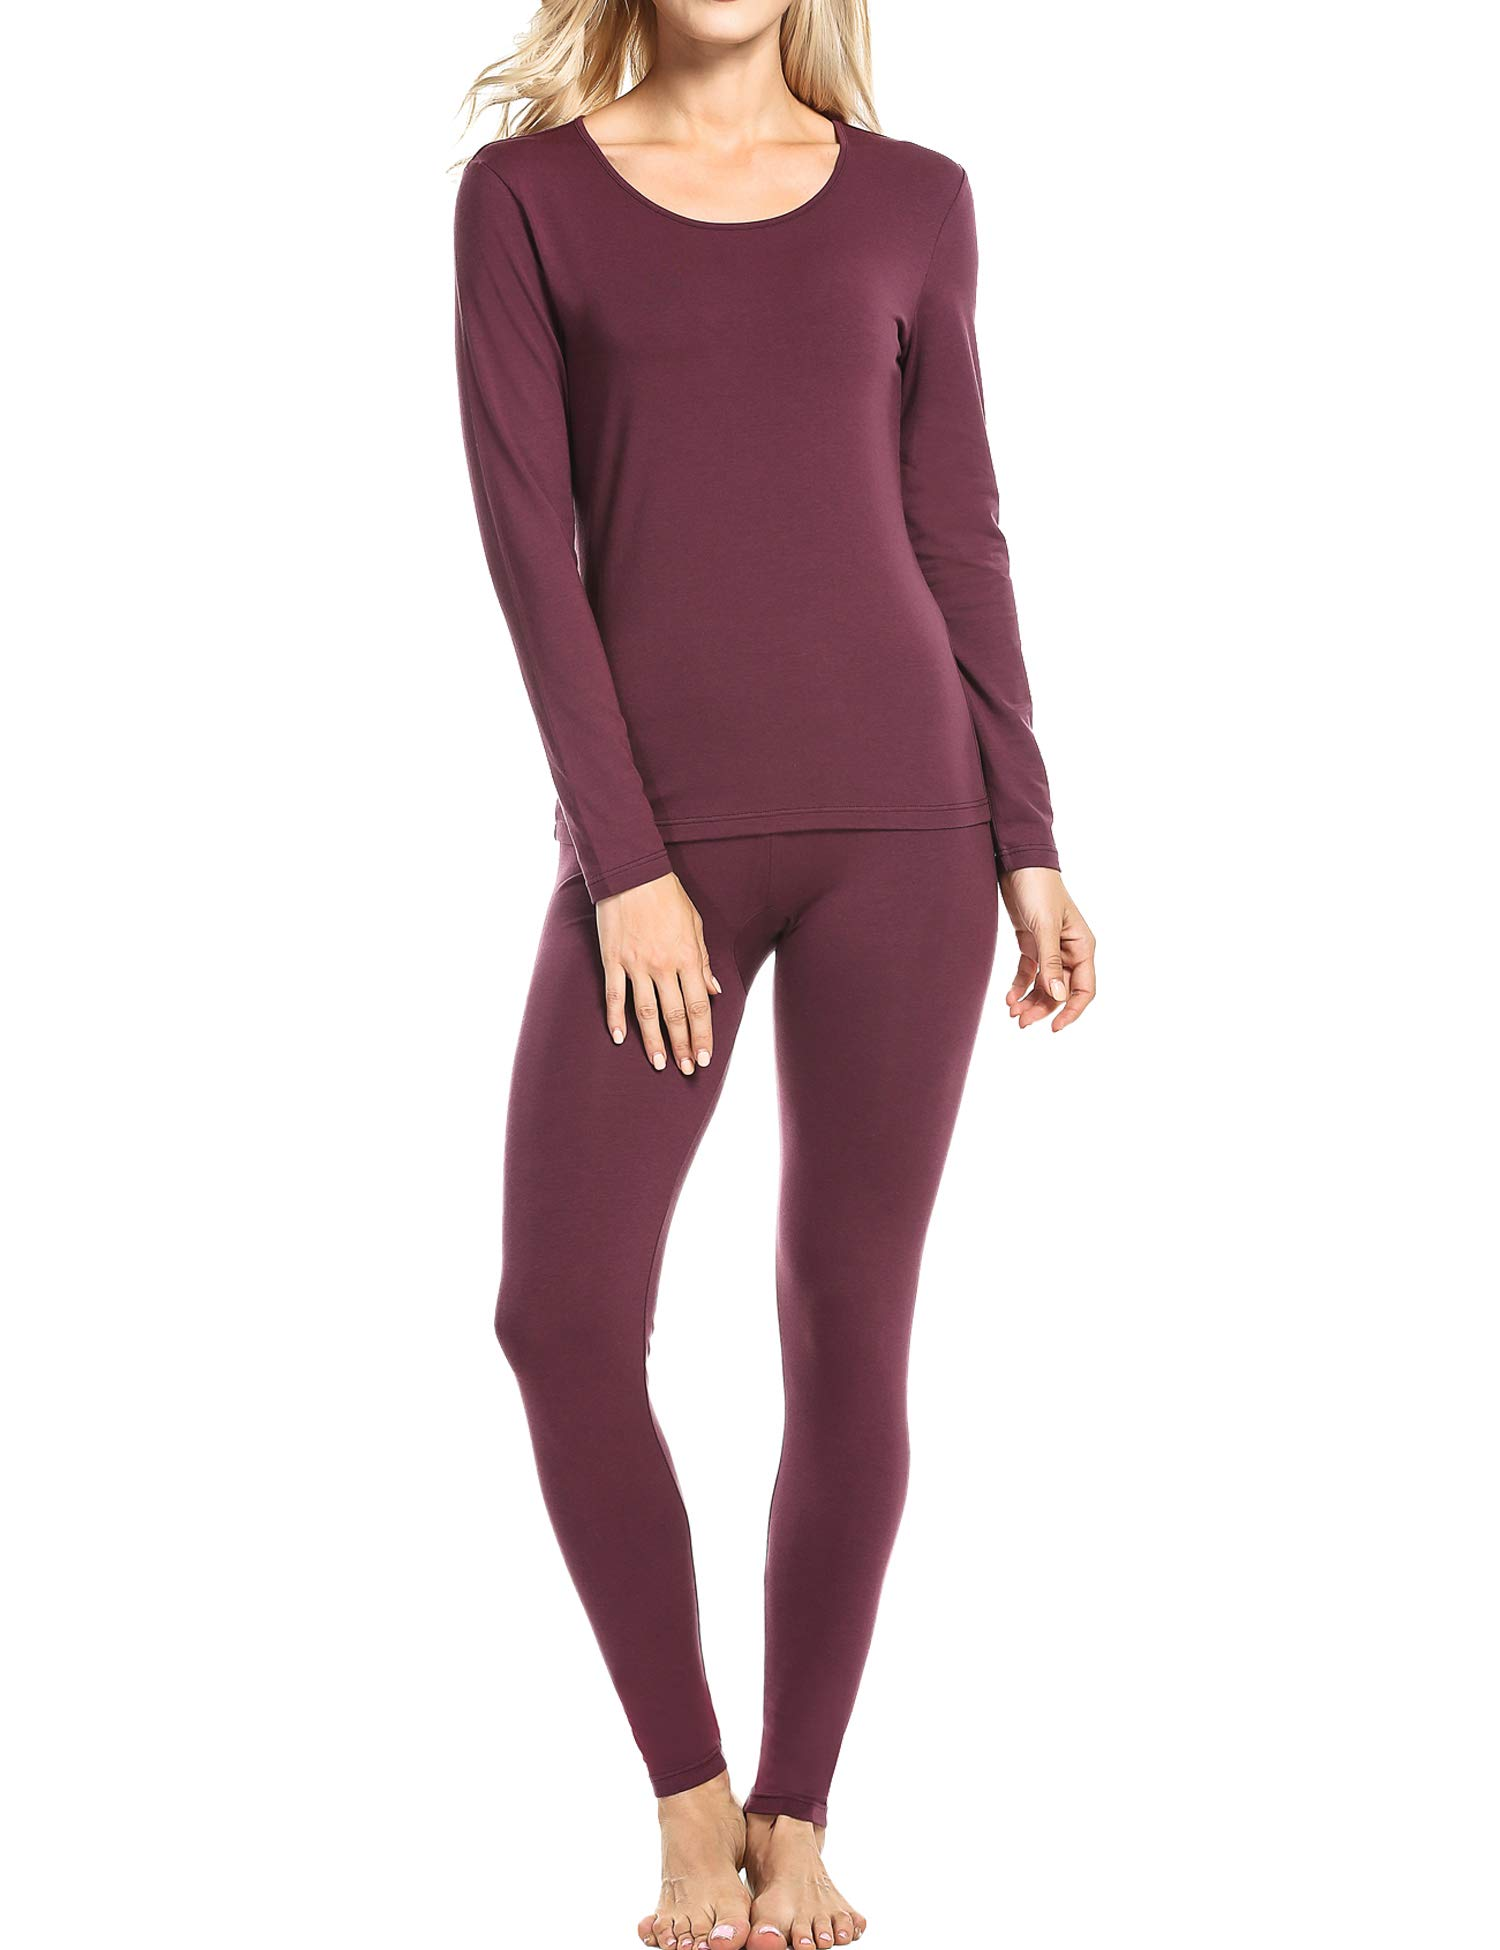 Ekouaer Pj Set Woman Long Sleeve Underwear Baselayer Sets Plus Size (Wine, Red, XXXL) by Ekouaer